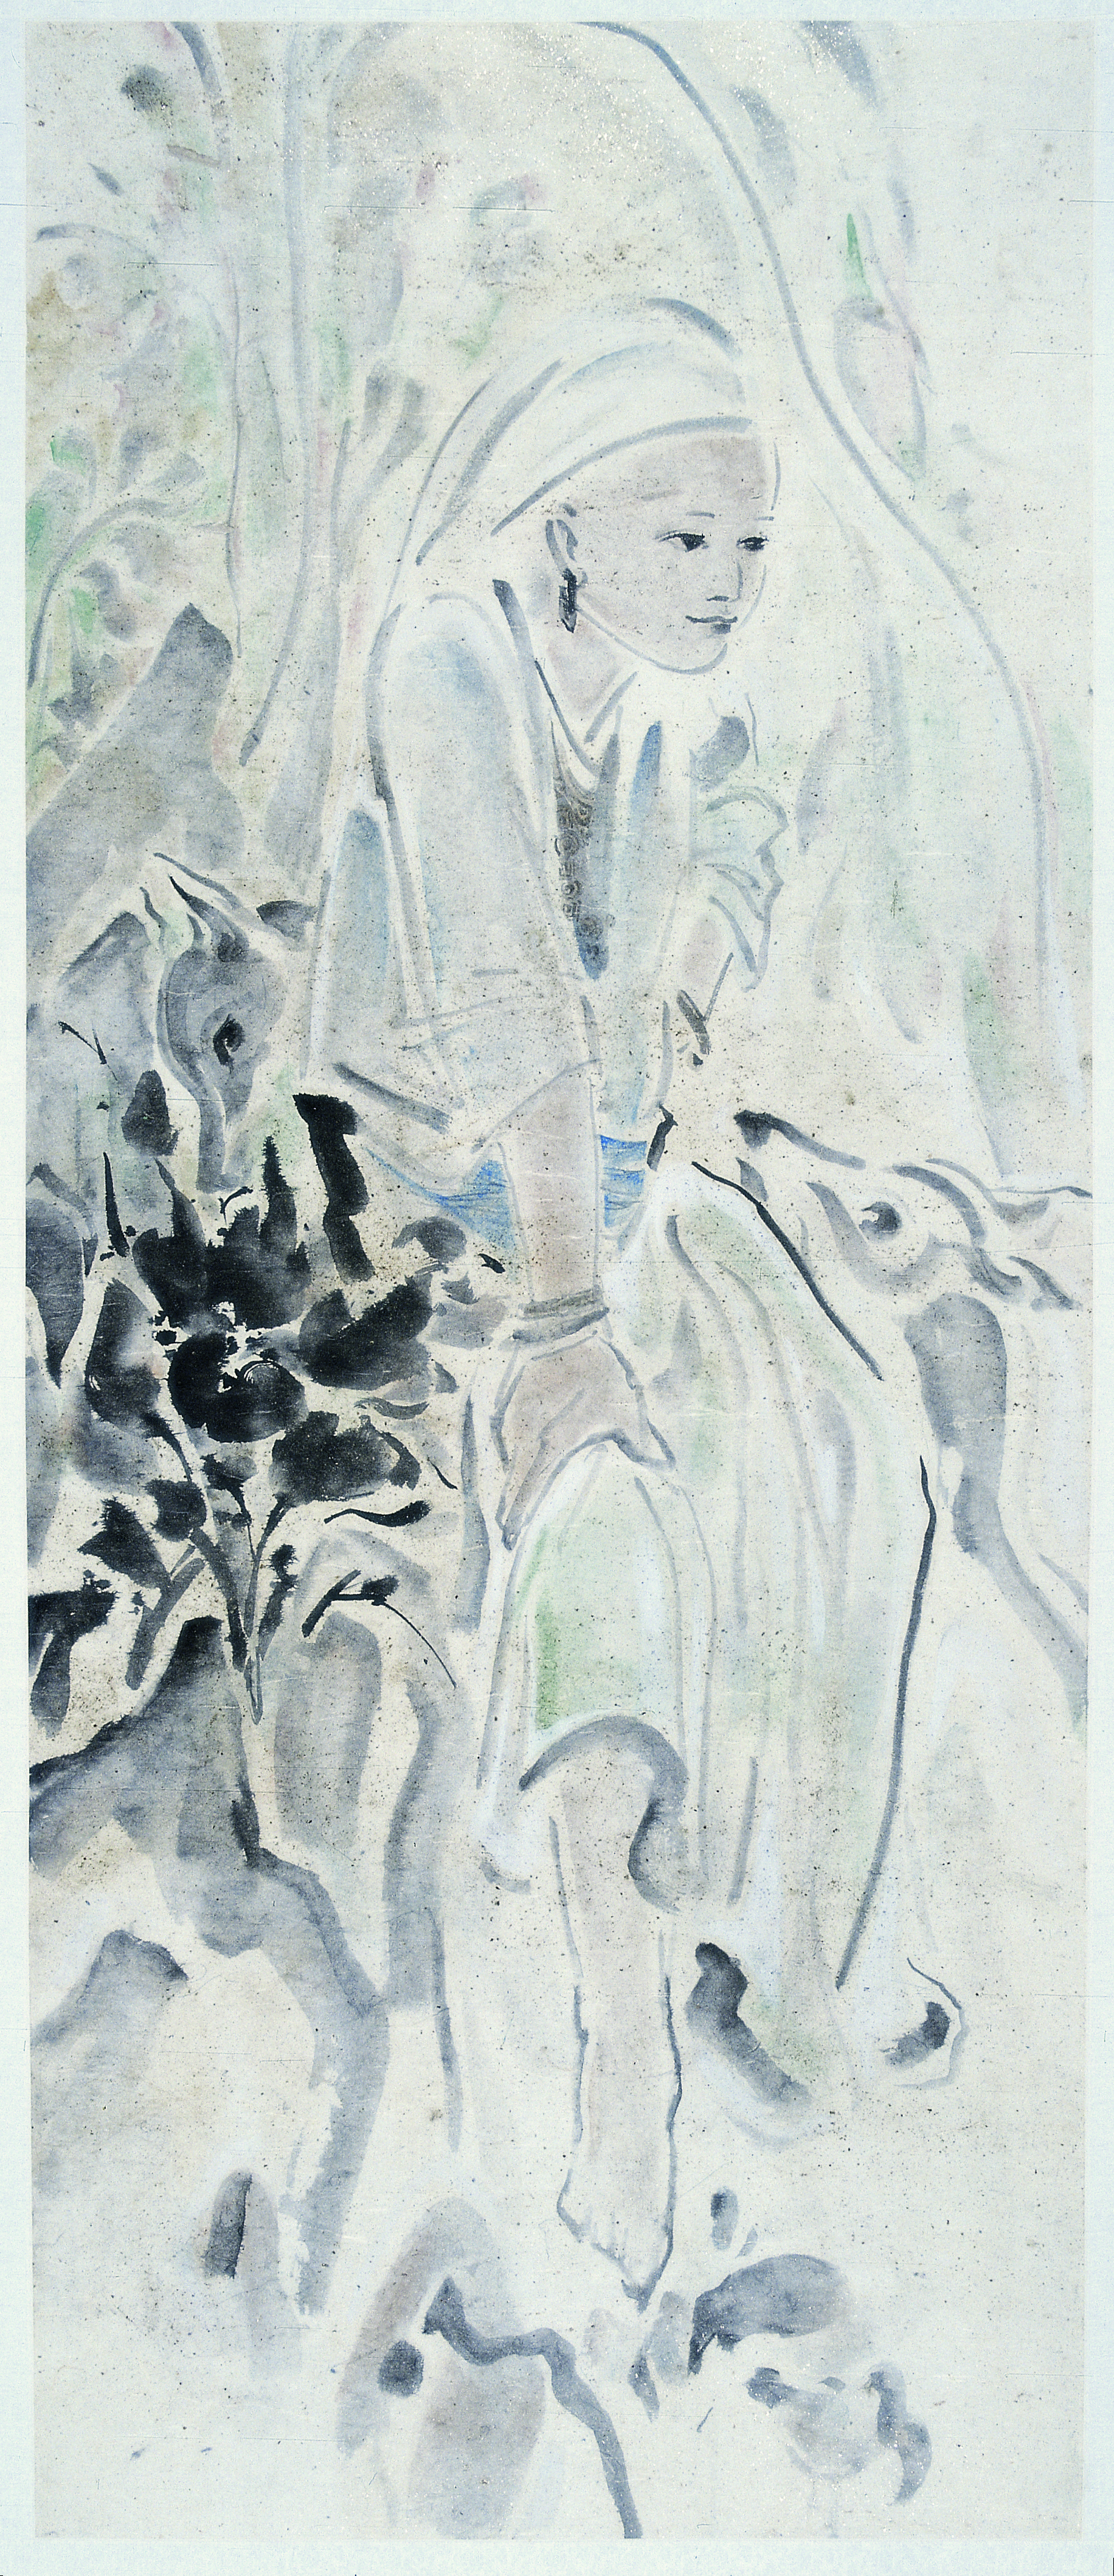 Pan Wenxun 潘汶汛, Rest 栖, 2005, Chinese ink and mineral color on rice paper 纸本水墨设色, 142 x 66 cm